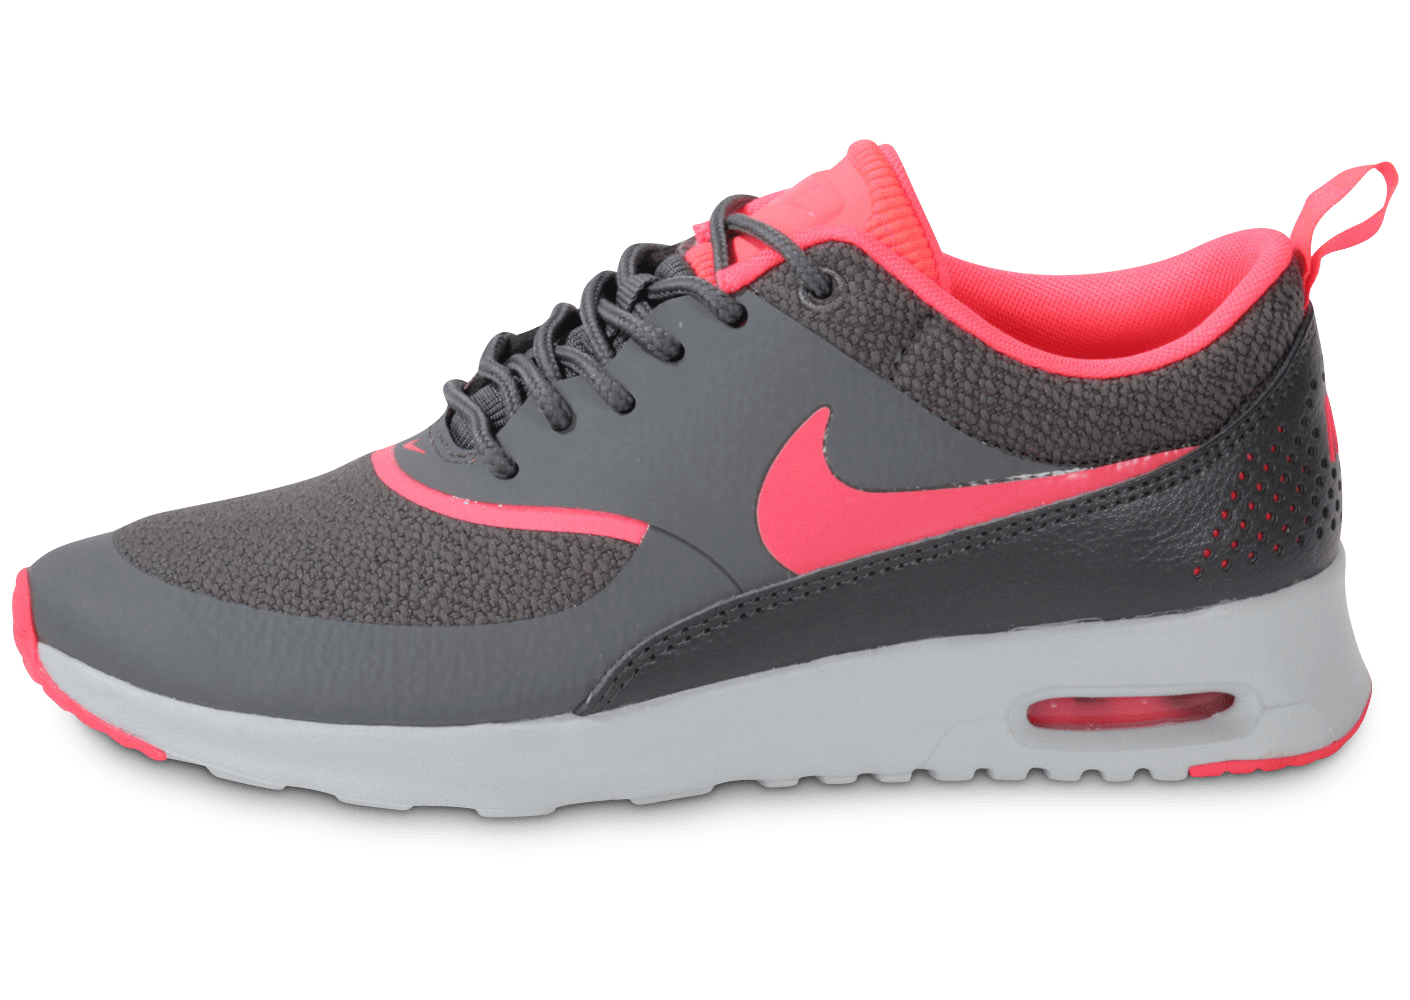 buy popular 3d6b2 4186e Nike Air Max Thea Grise Rose - Chaussures Baskets femme - Chausport